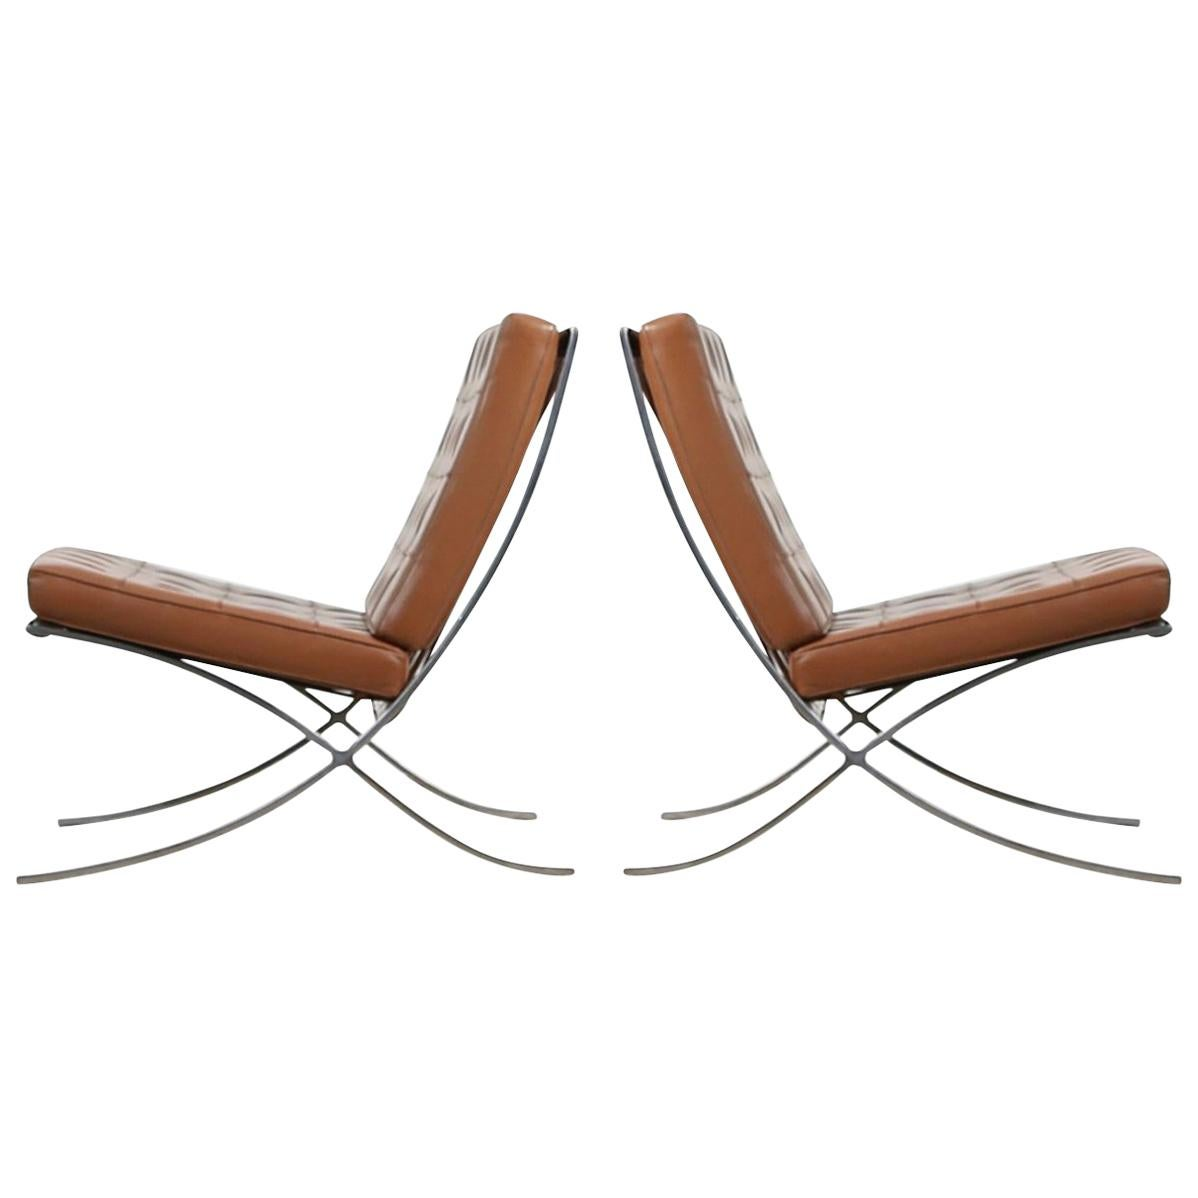 Barcelona Chairs For Sale Double Signed Pair Of Mies Van Der Rohe Barcelona Chairs For Knoll International